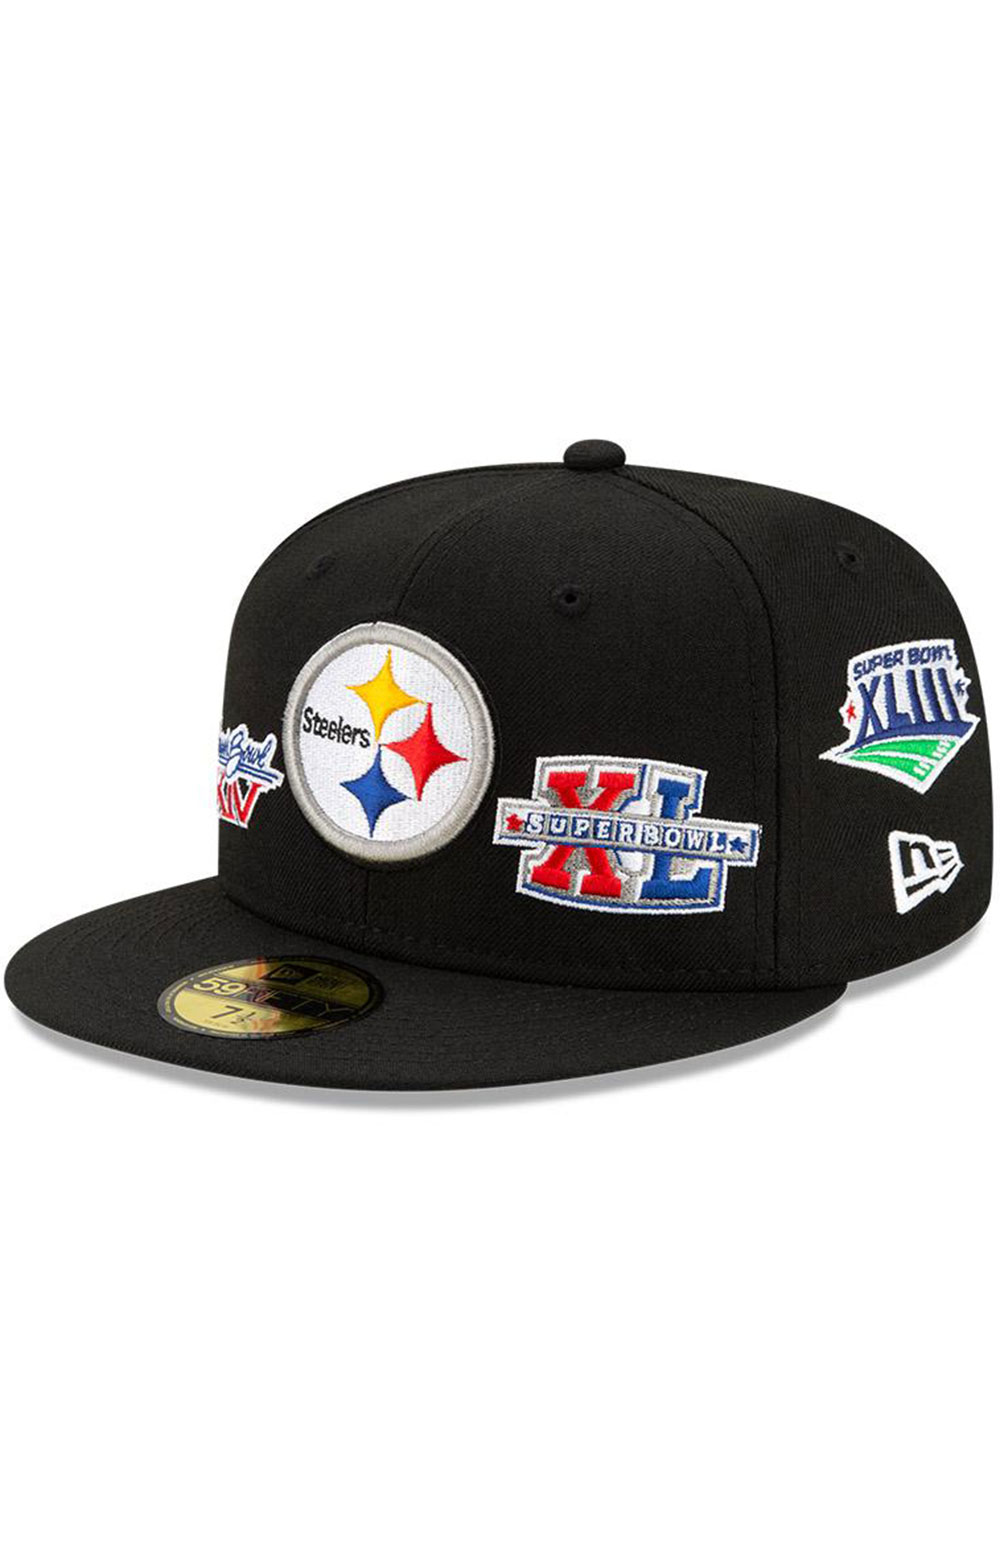 Pittsburgh Steelers Super Bowl Patch 59Fifty Fitted Hat - Black